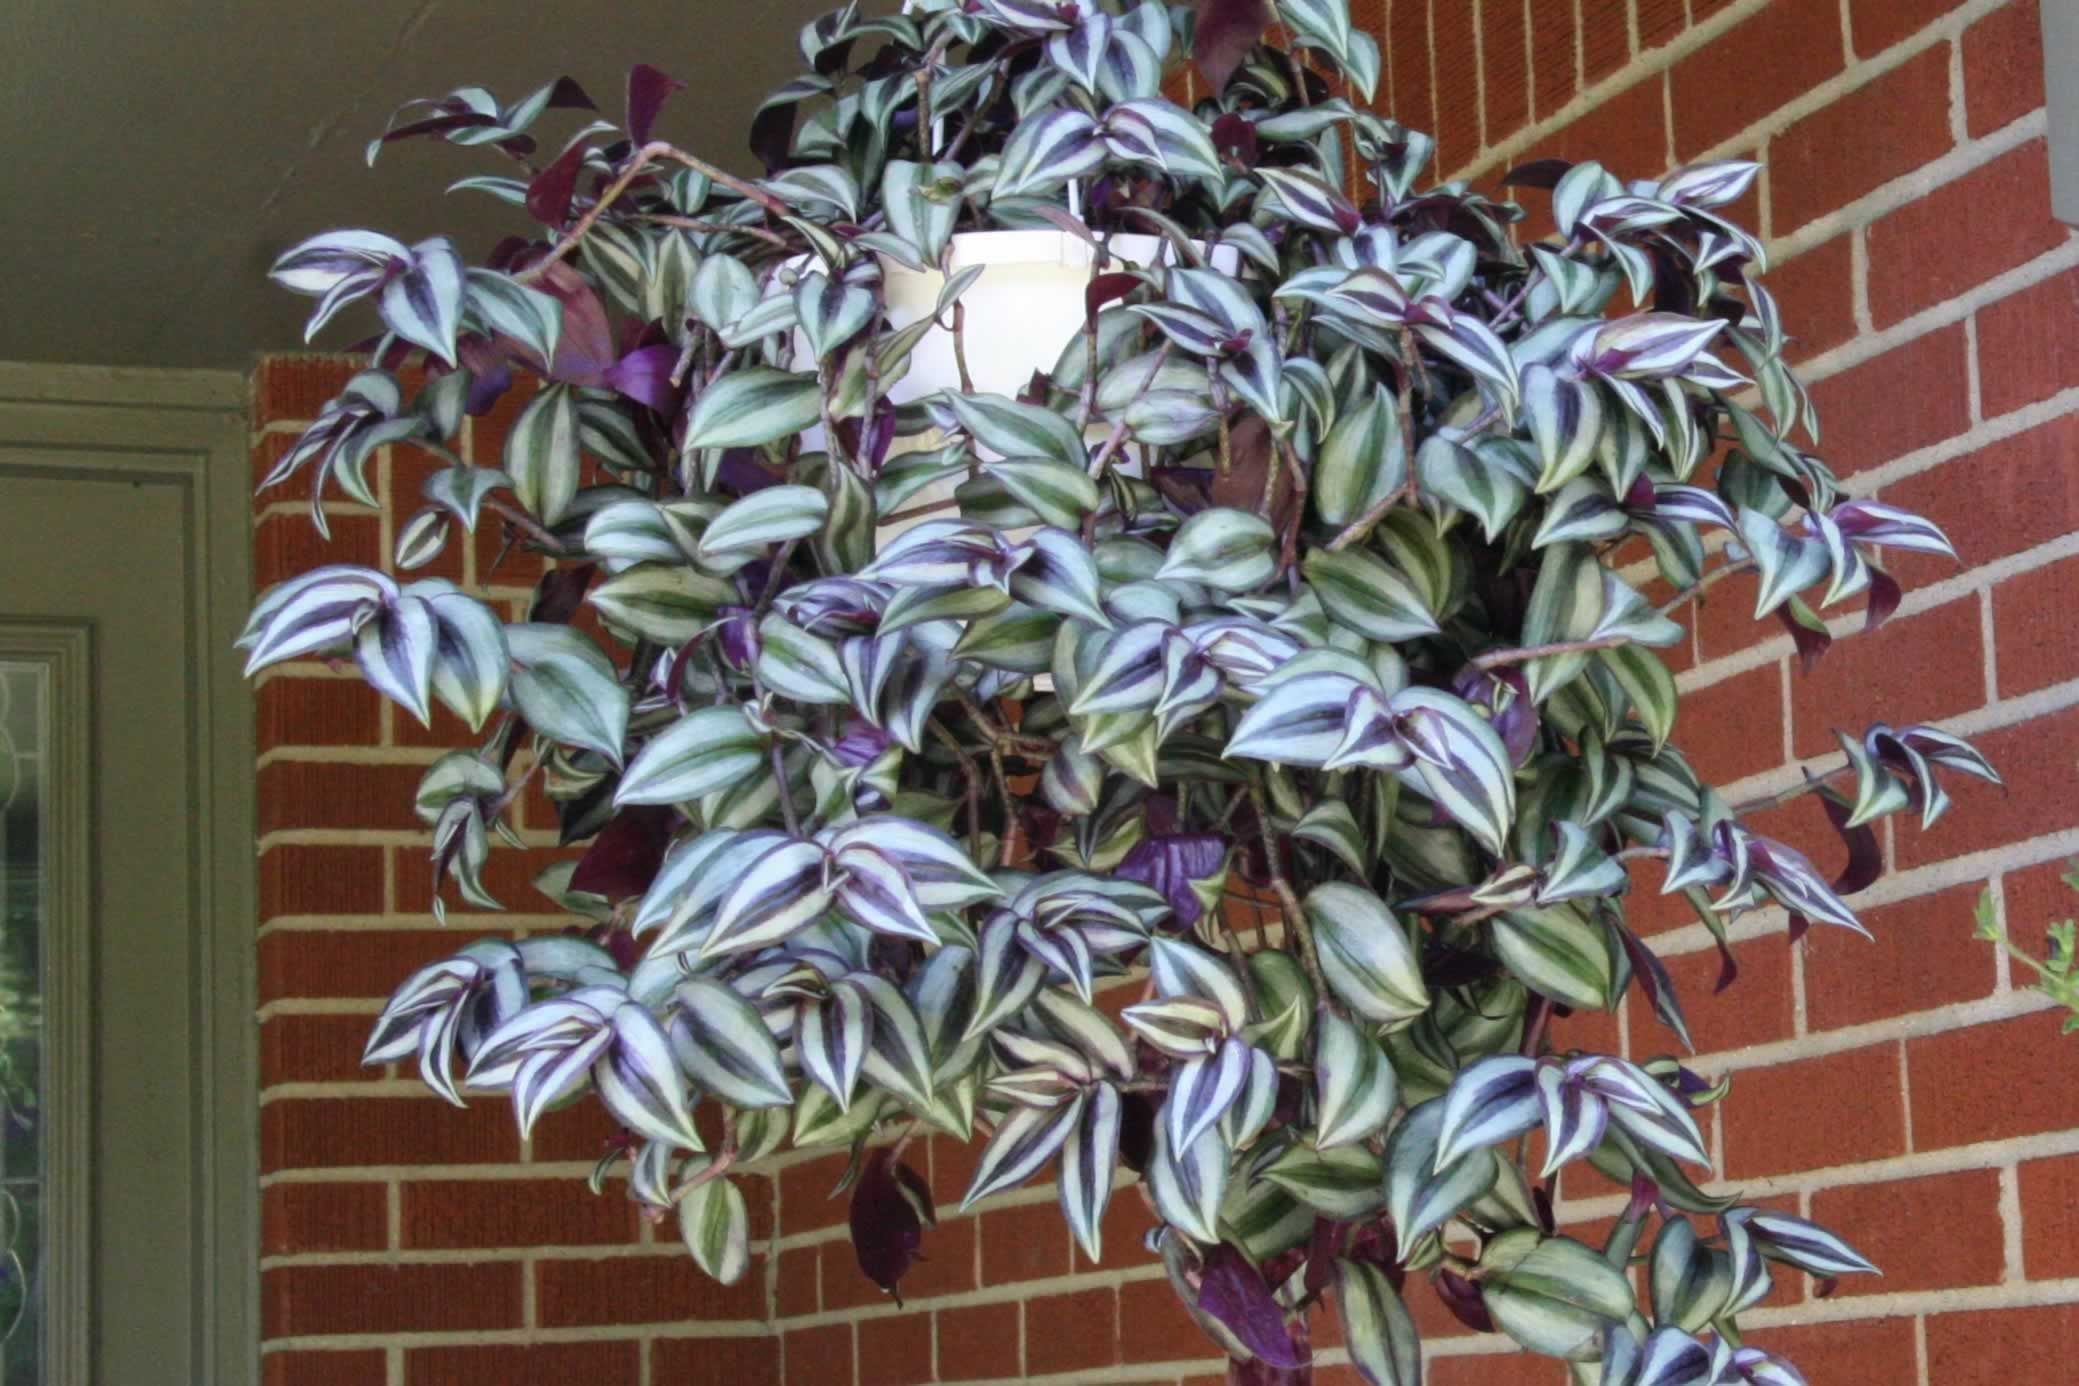 Tradescantia zebrina 'Wandering Jew' - this plant grows well indoors or out, and doesn't mind a bit of direct sunlight. #wanderingjewplant Tradescantia zebrina 'Wandering Jew' - this plant grows well indoors or out, and doesn't mind a bit of direct sunlight. #wanderingjewplant Tradescantia zebrina 'Wandering Jew' - this plant grows well indoors or out, and doesn't mind a bit of direct sunlight. #wanderingjewplant Tradescantia zebrina 'Wandering Jew' - this plant grows well indoors or out, and do #wanderingjewplant